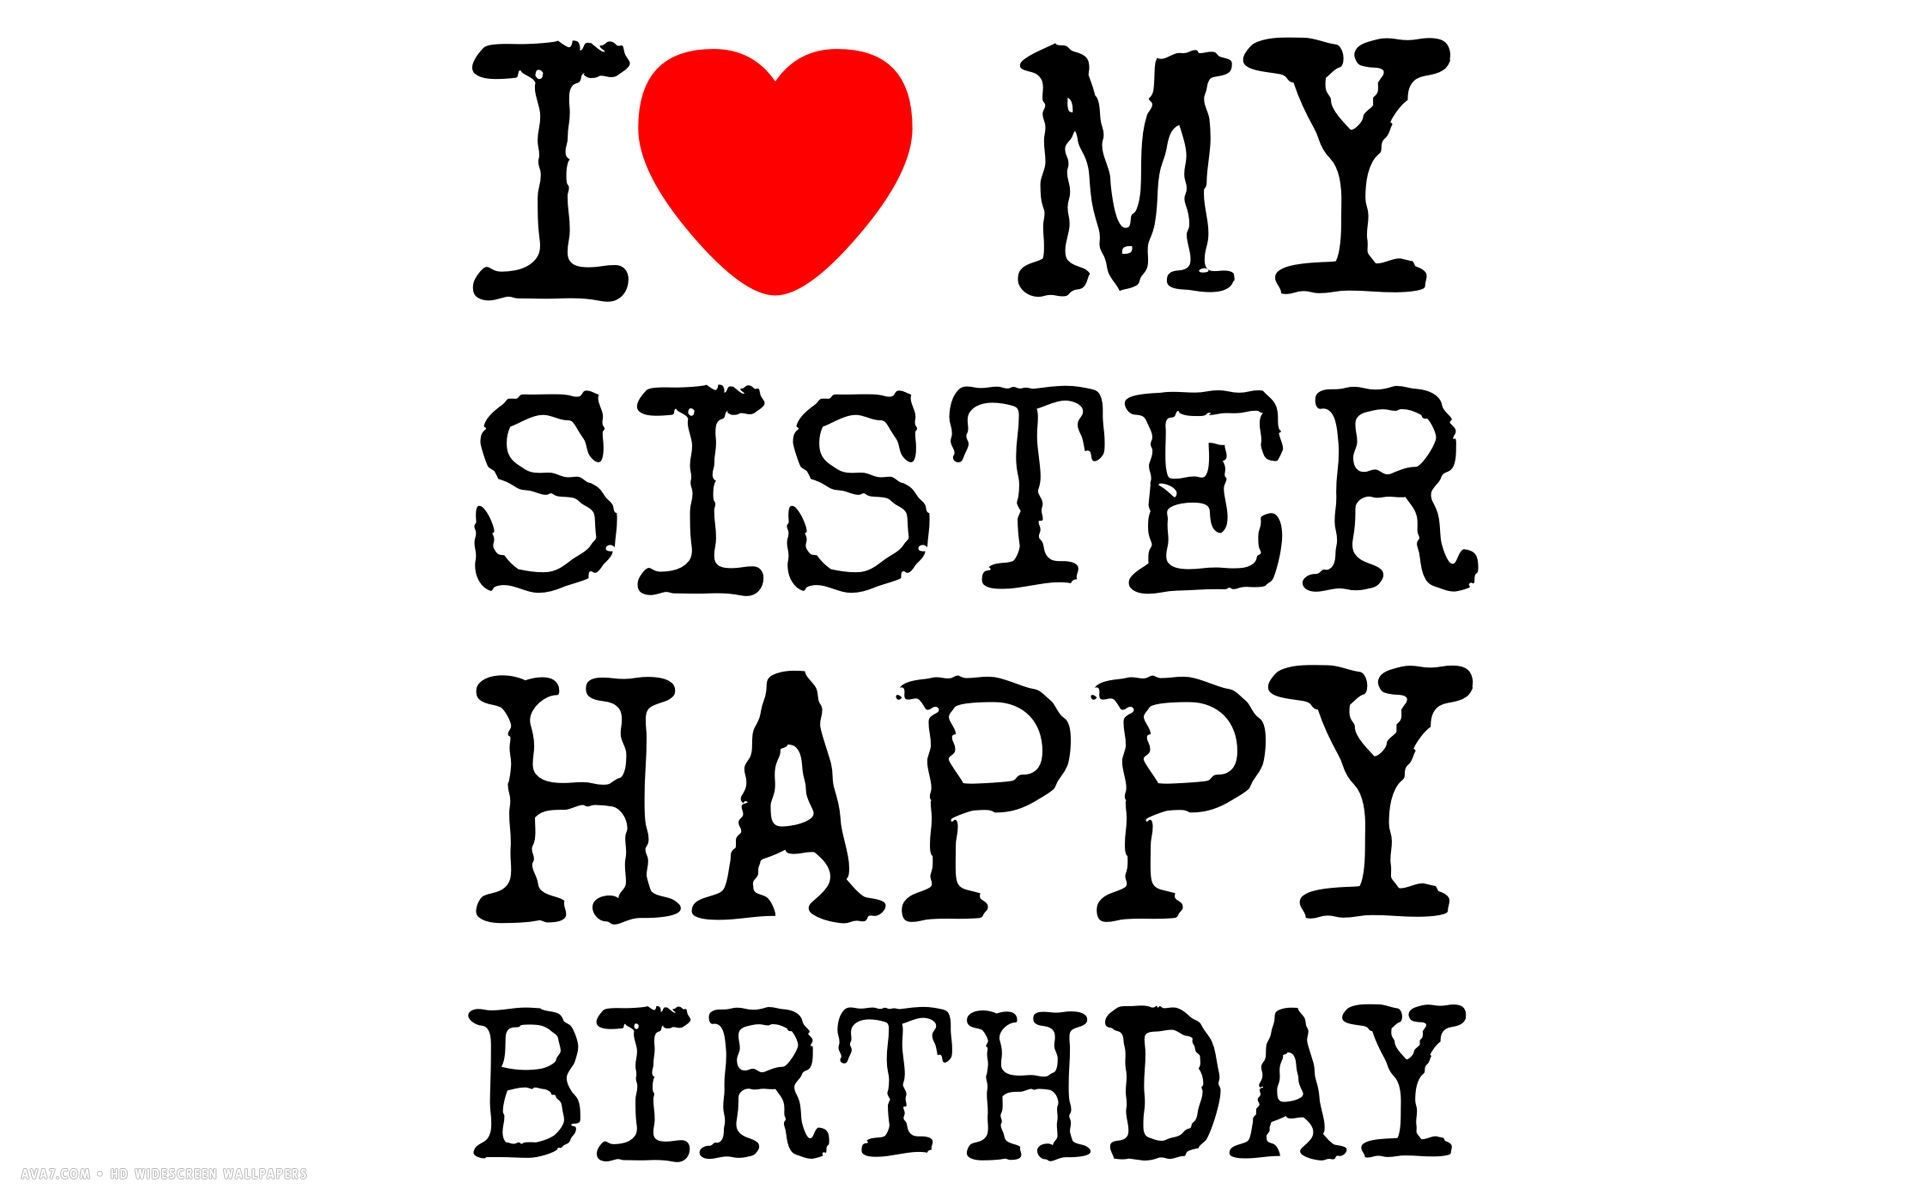 Free Wallpaper Of Love My Sister Download Wallpaper Of Love My Sister Hd Dow Birthday Wishes For Sister Happy Birthday Sister Quotes Sister Birthday Quotes